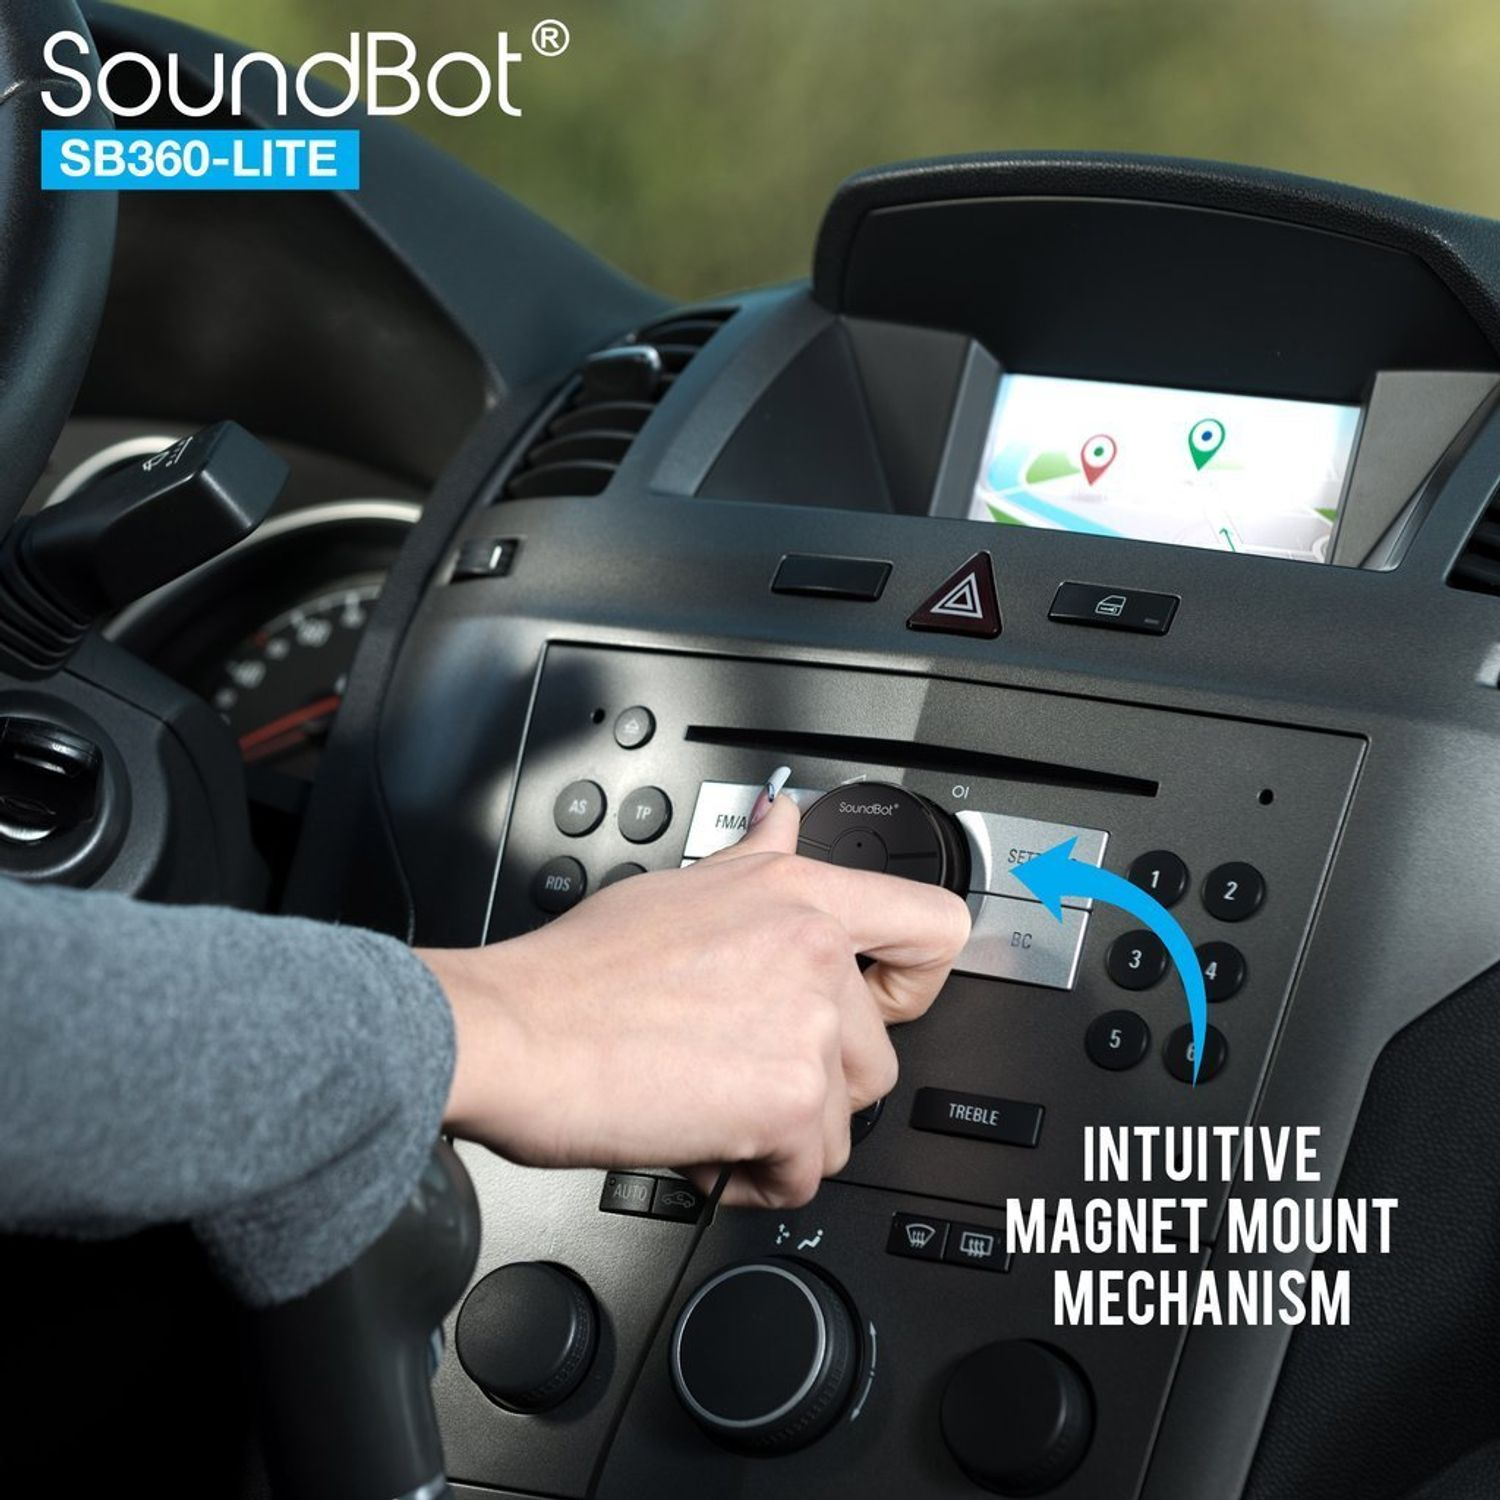 Aliexpress Com Buy Marsnaska High Quality Car Bluetooth Fm Music Receiver Car Bluetooth: Buy Soundbot Car Bluetooth Adapter At Best Price In India